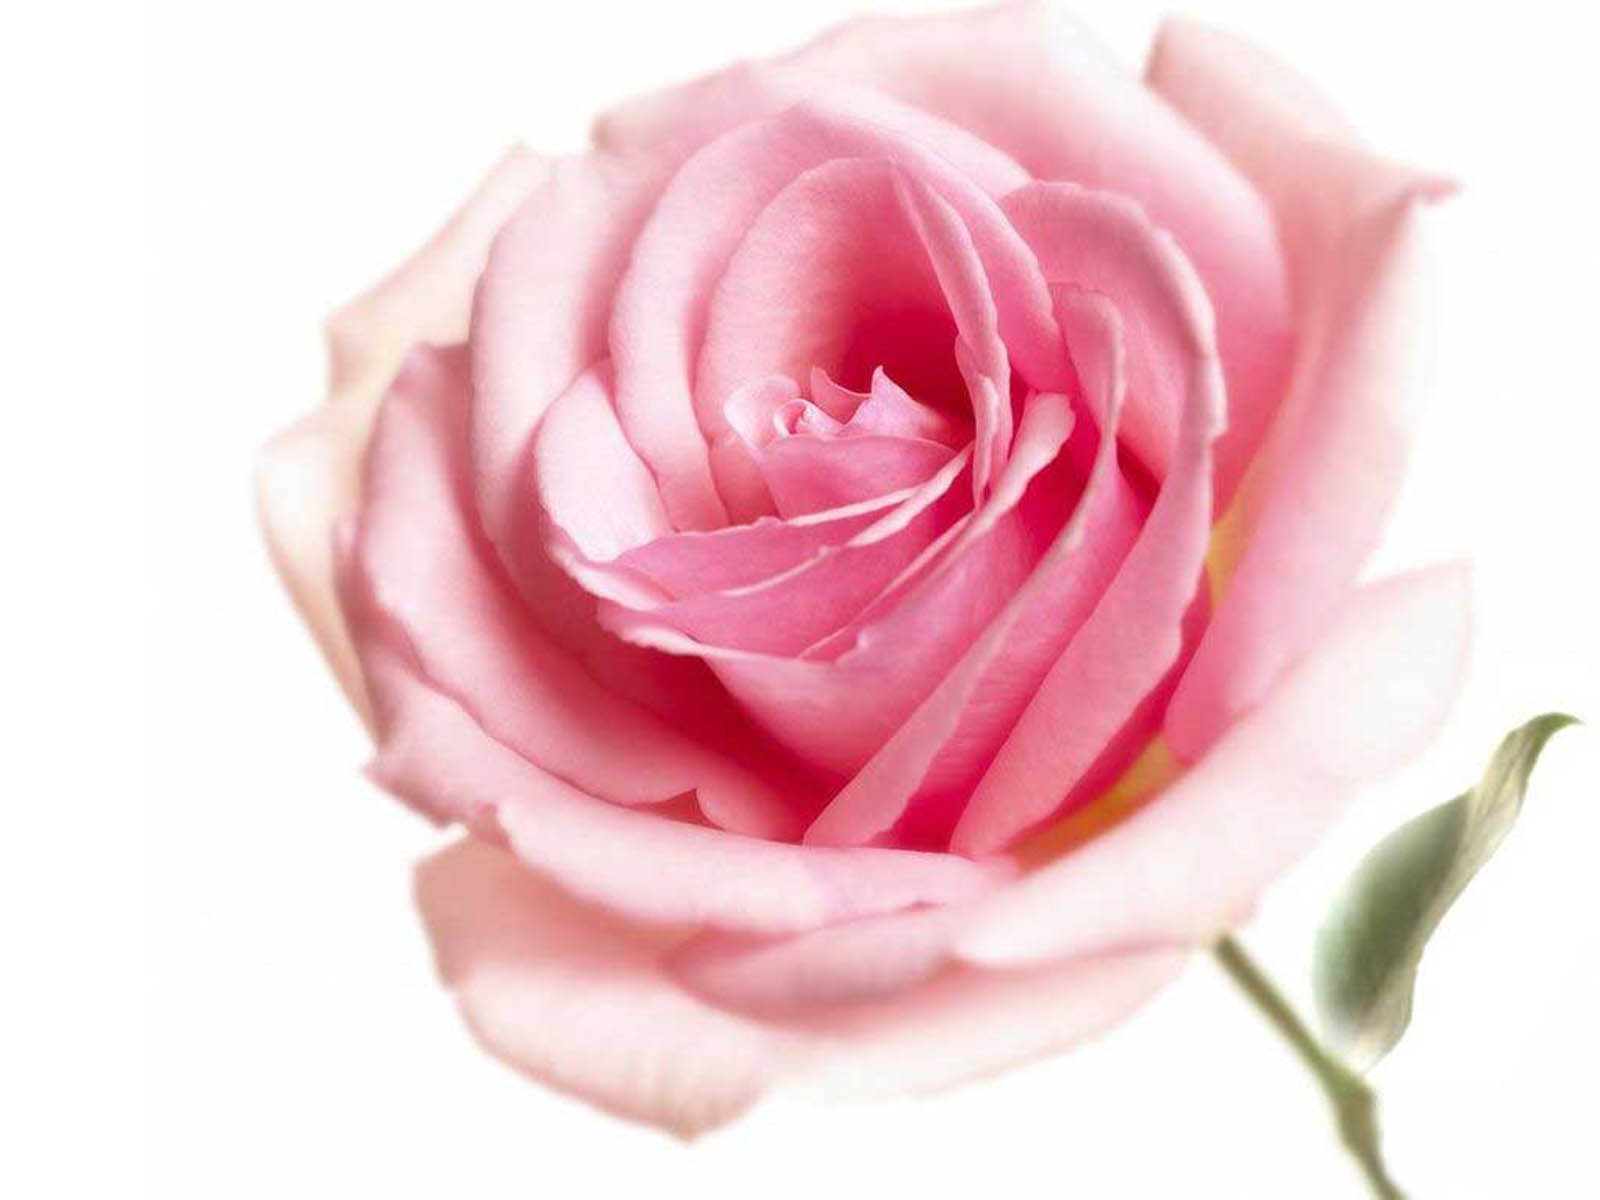 Pink rose wallpapers desktop wallpaper - Pink rose black background wallpaper ...